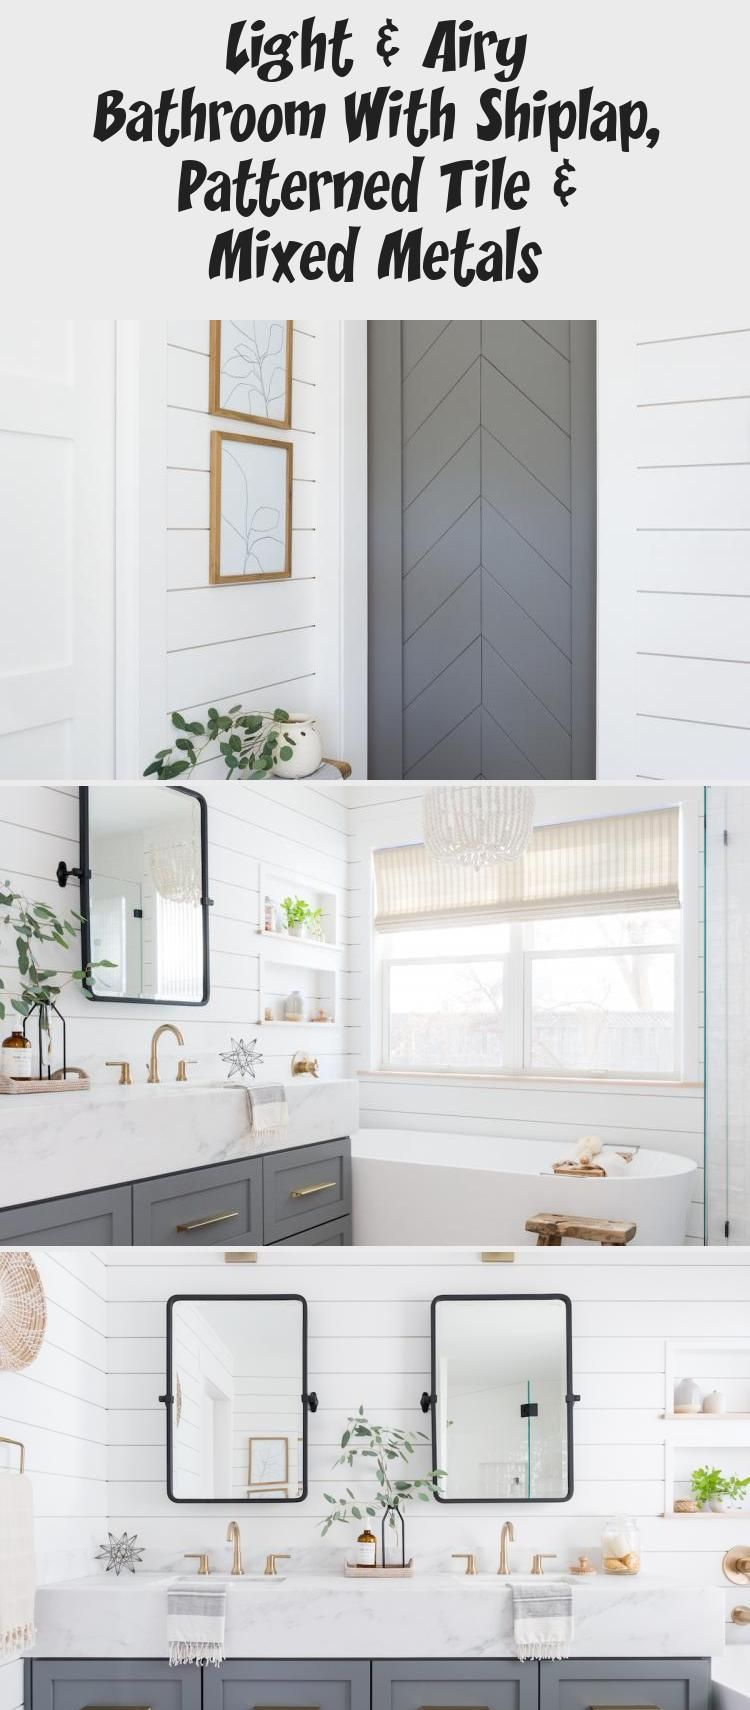 Photo of Light & Airy Bathroom With Shiplap, Patterned Tile & Mixed Metals – Decoration